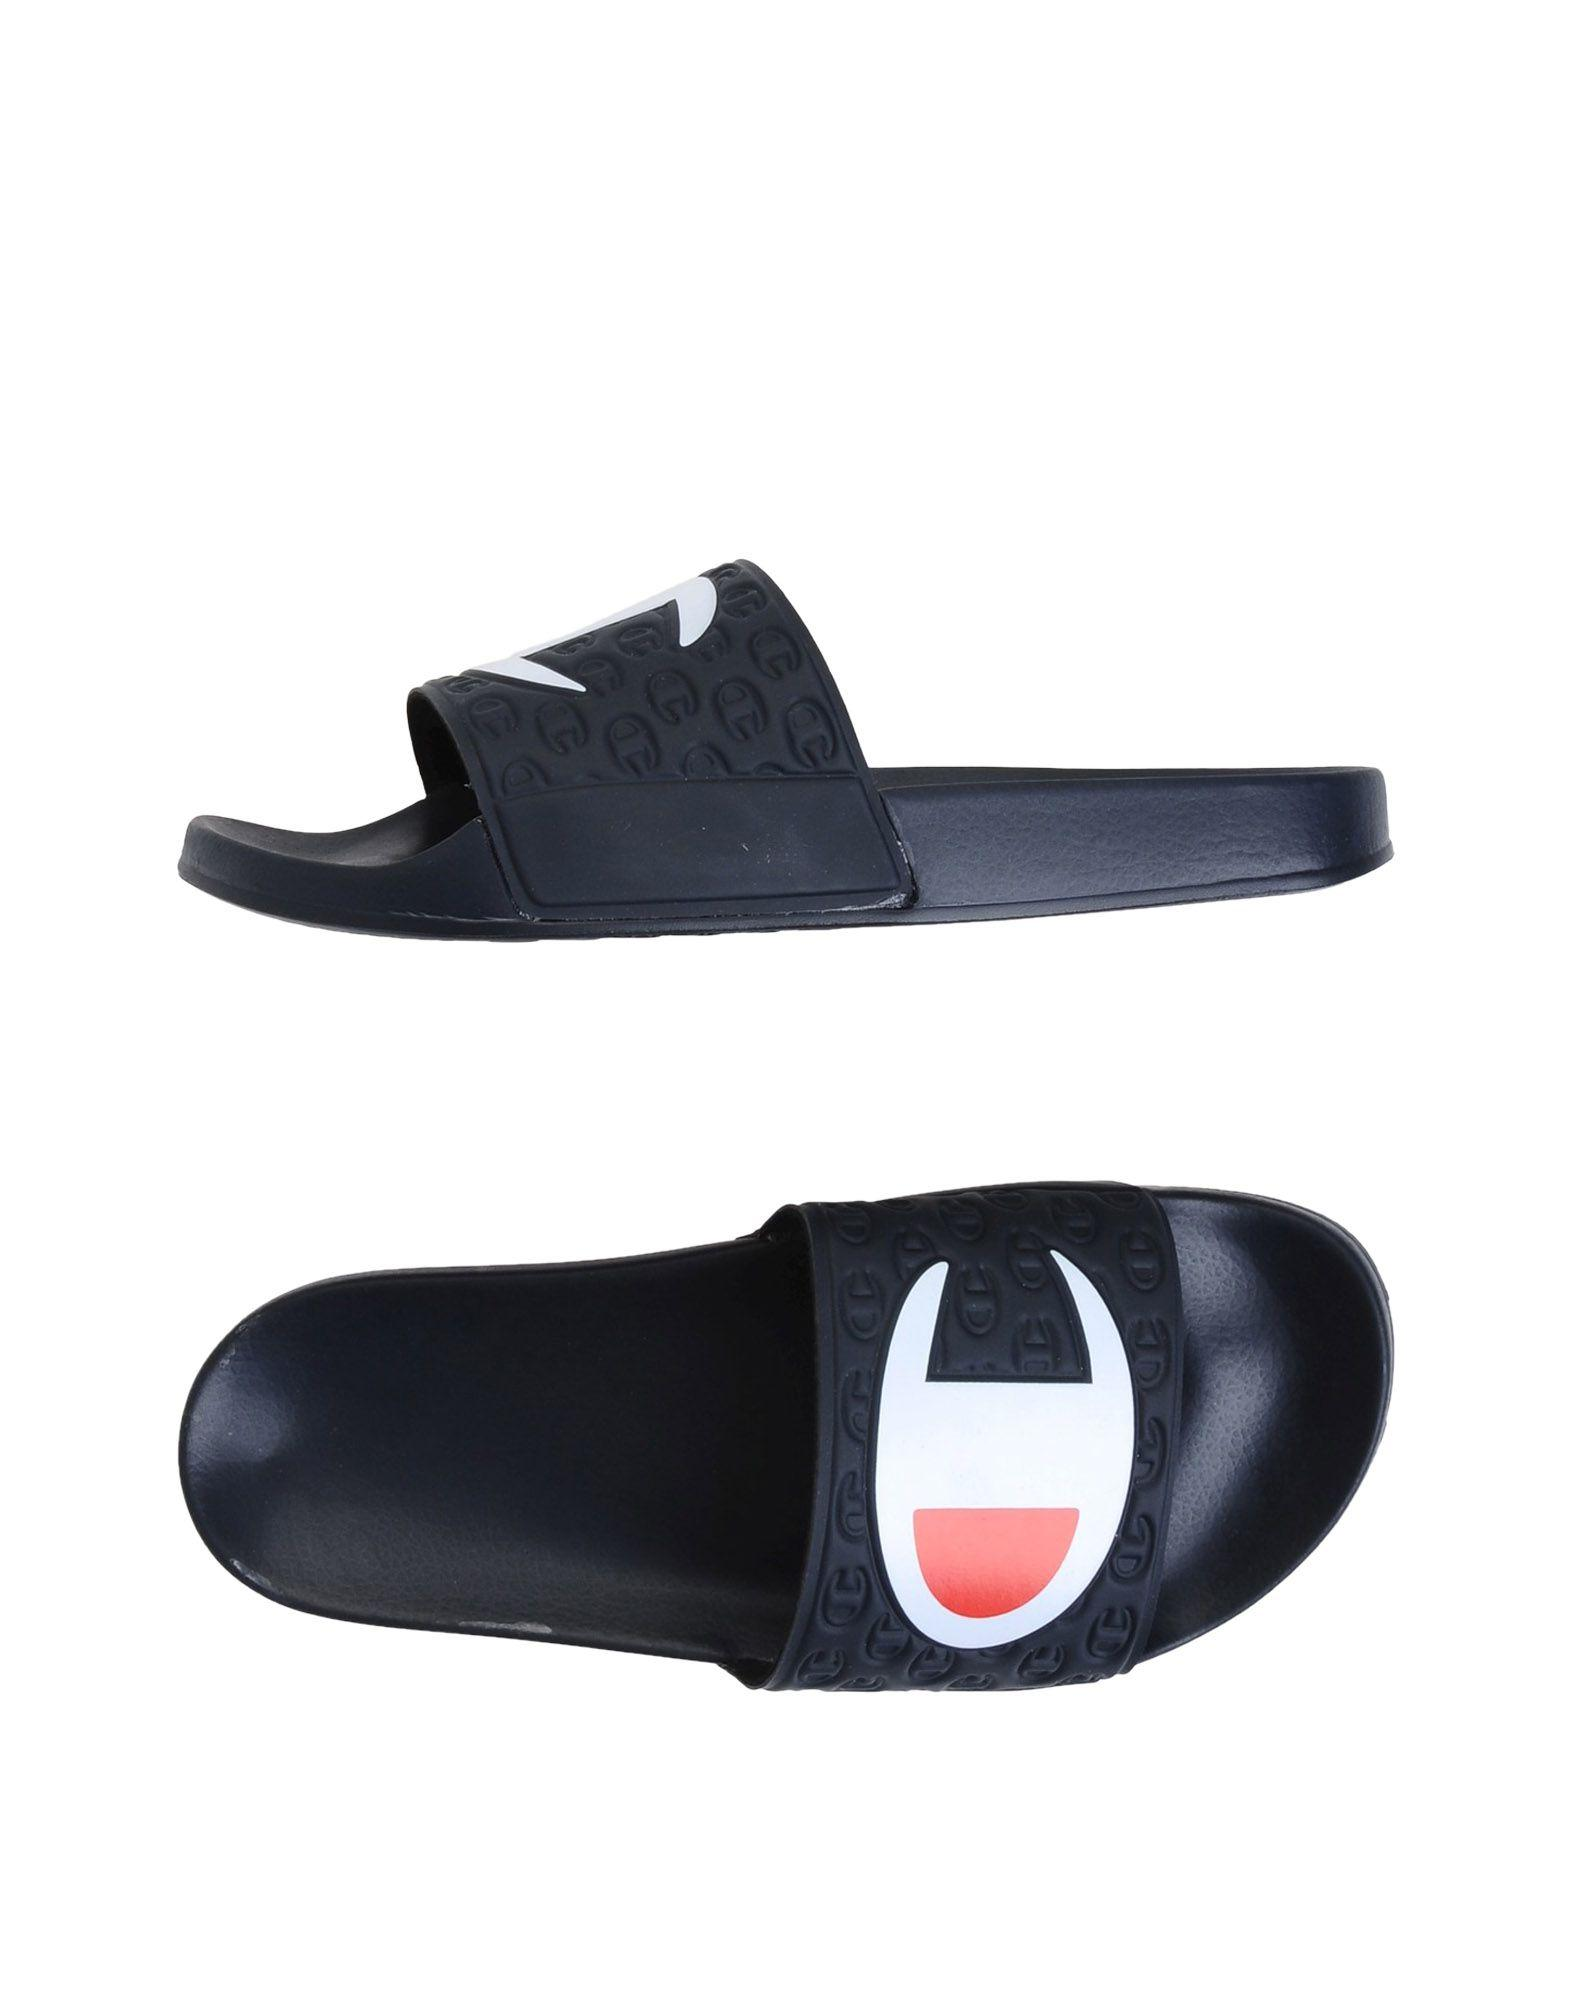 6c37870a5609f Champion Multi-Lido Slide - Black